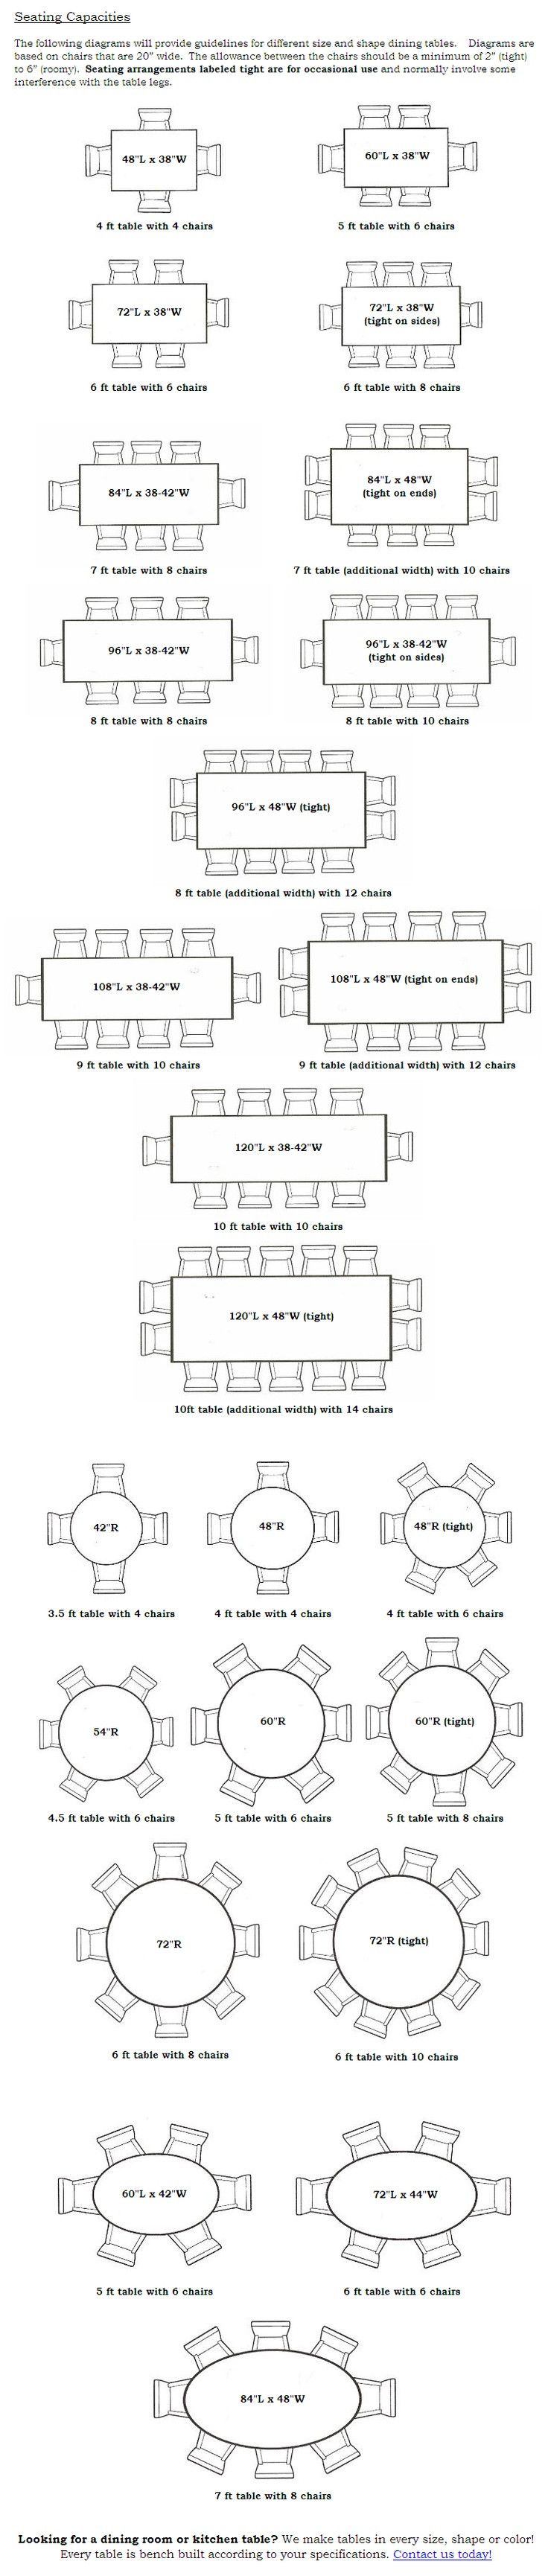 Dining Table seating capacities chart by size and shape. Because space planning = important.